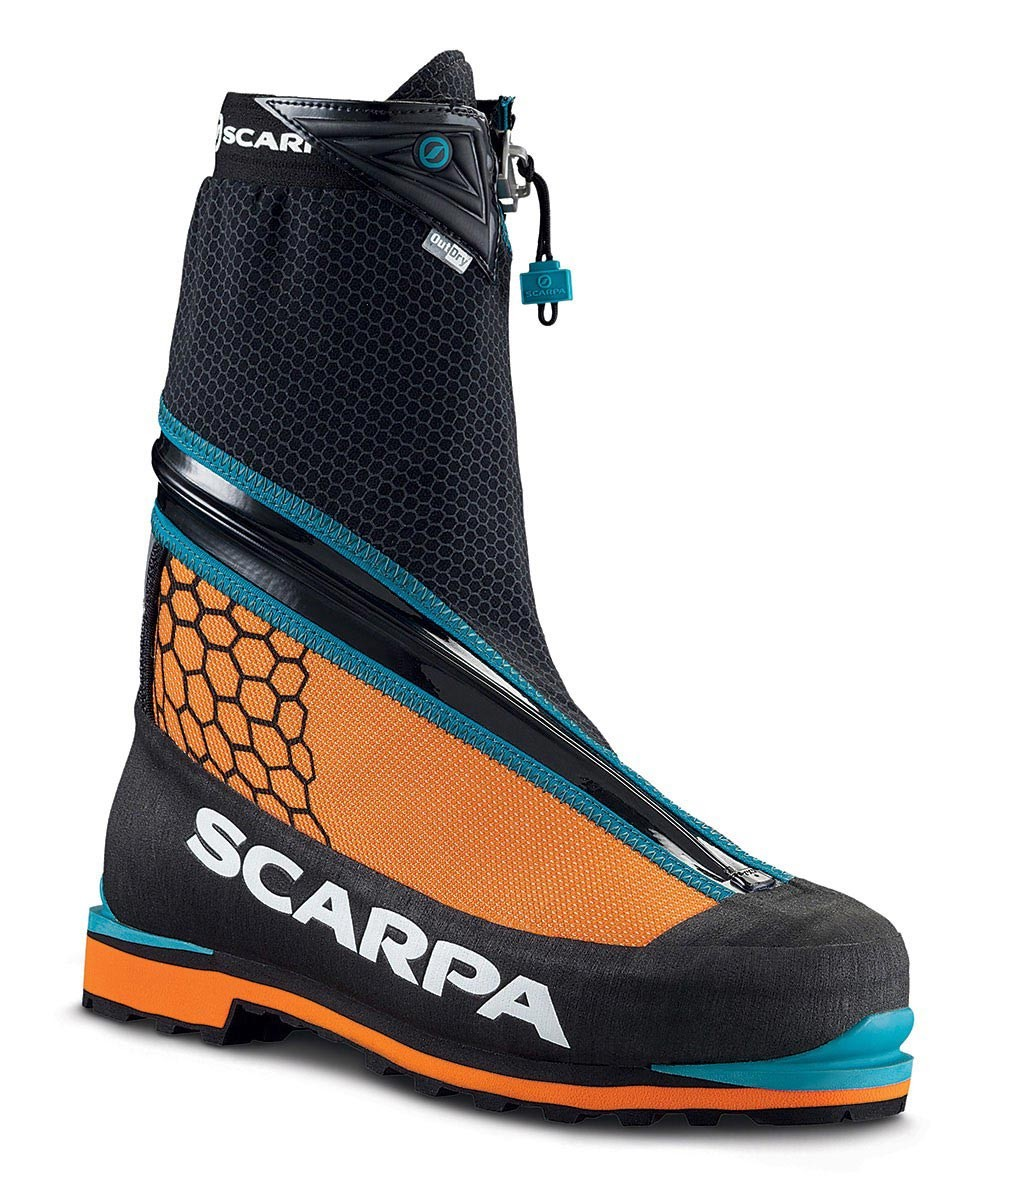 Scarpa Phantom Tech, bota simple con polaina integrada